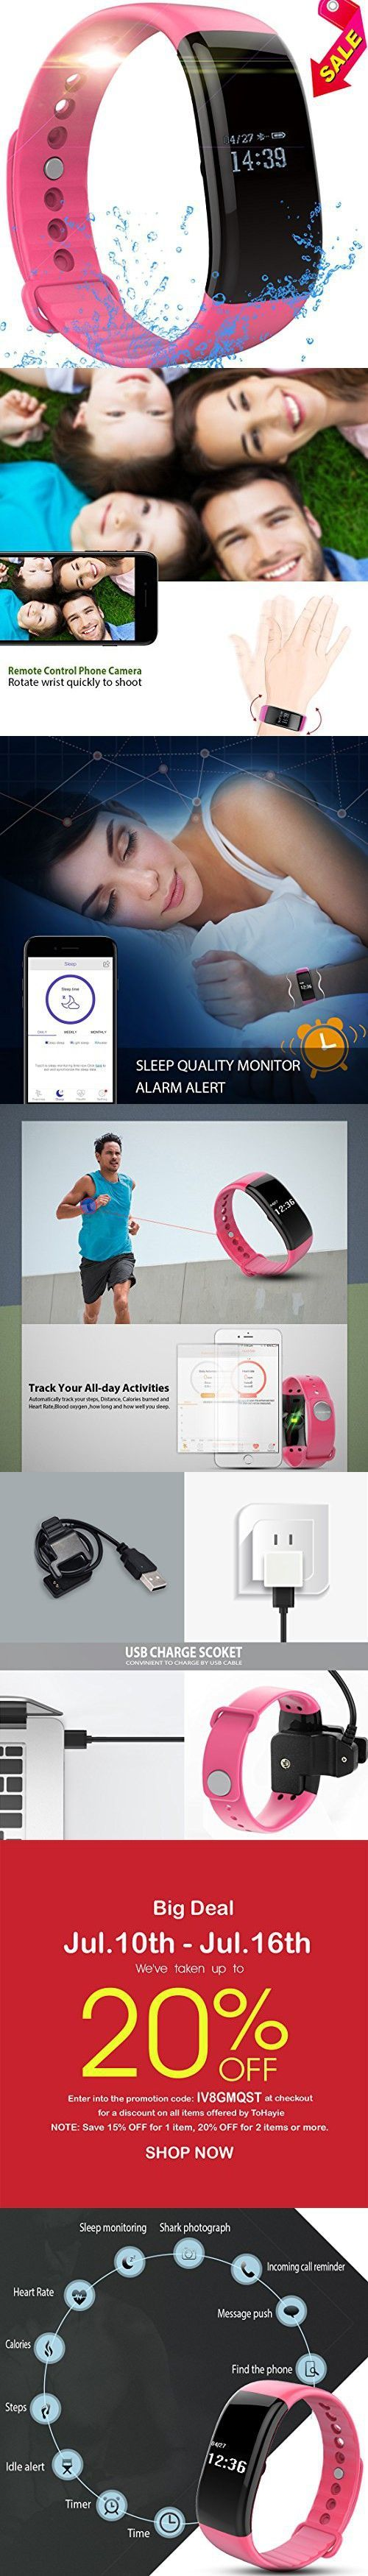 Fitness Tracker Watch, ToHayie Waterproof Fitness Tracker with Heart Rate Monitor Activity Bluetooth Bracelet Watch for Apple IOS Android Smartwatch with Sleep Monitoring Wristband Band Pink